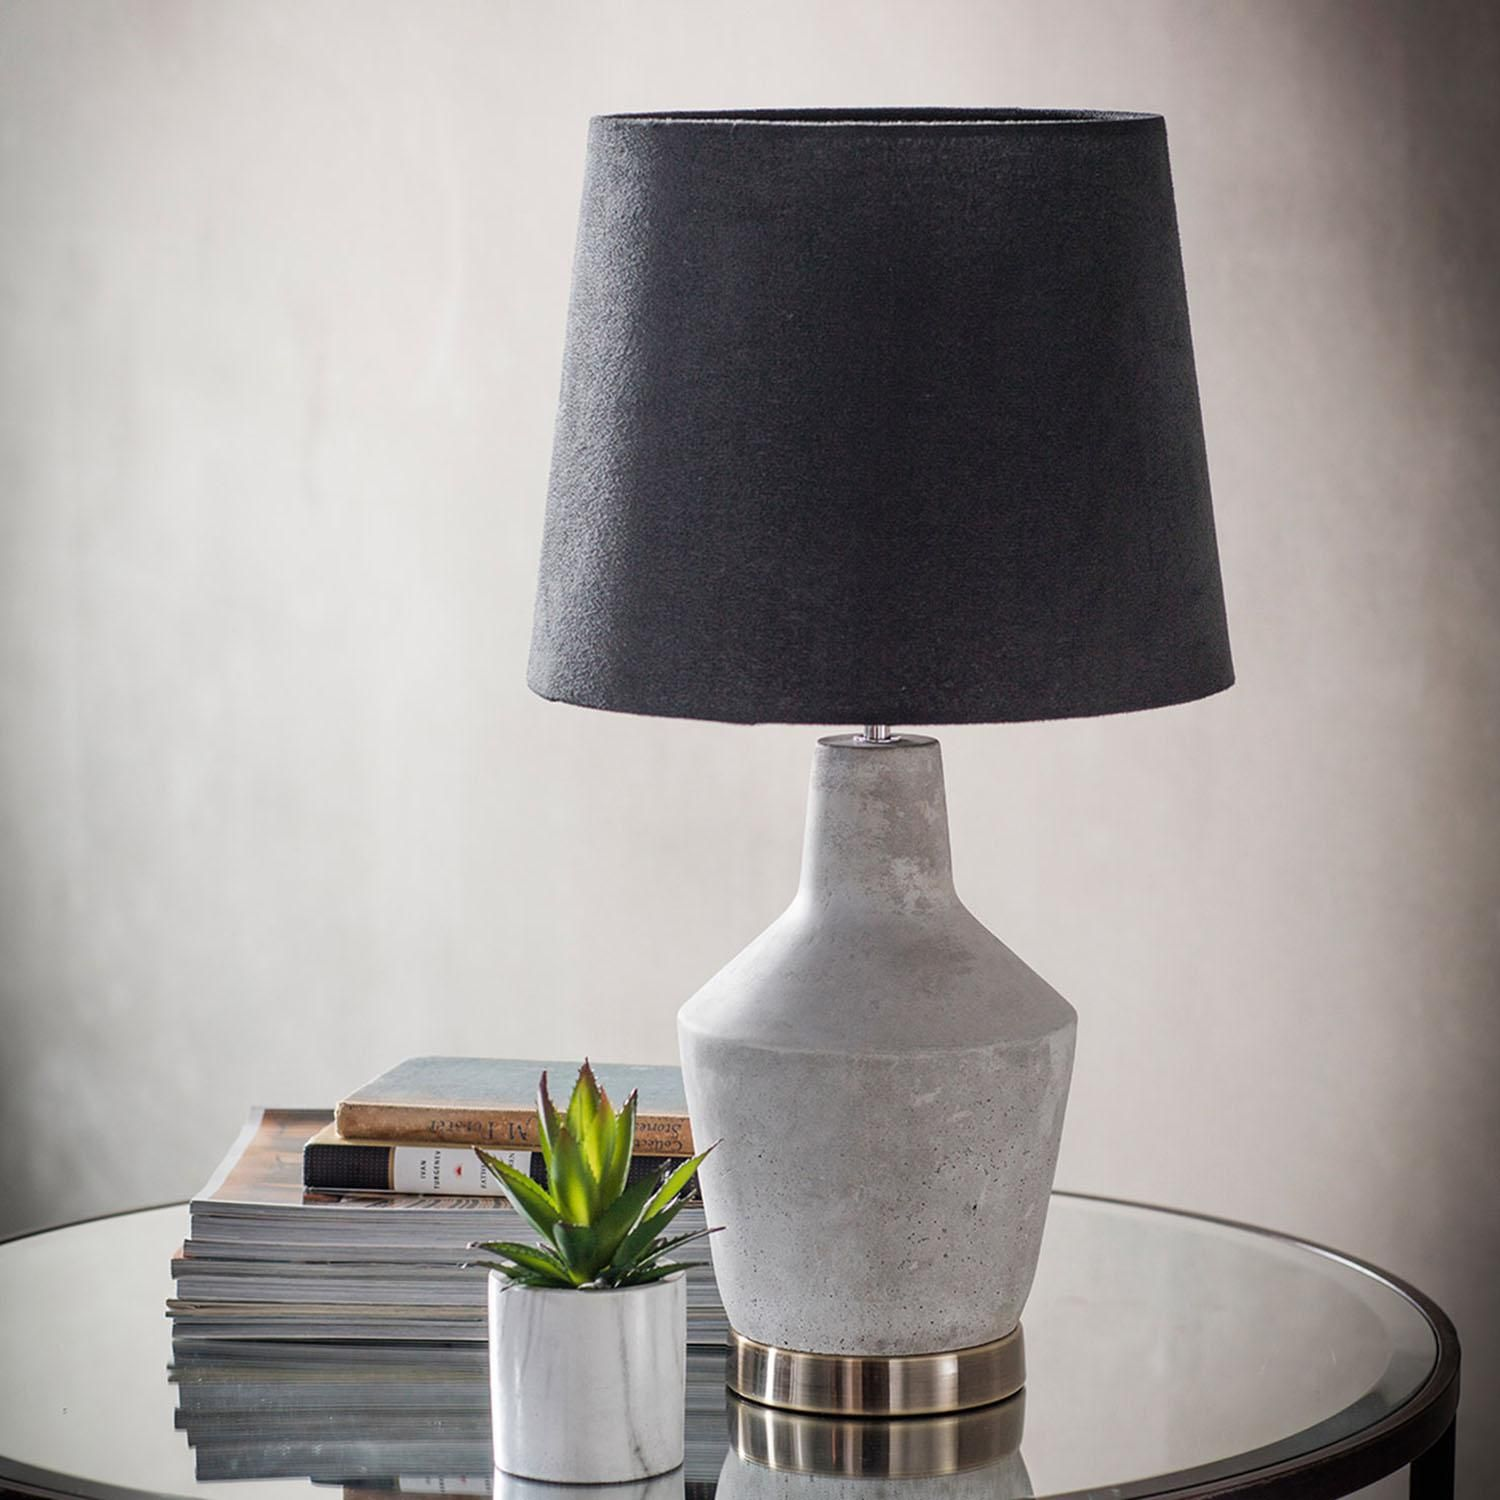 Gold Betong Table Lamp At Dunelm Table Lamp Vintage Industrial Furniture Concrete Table